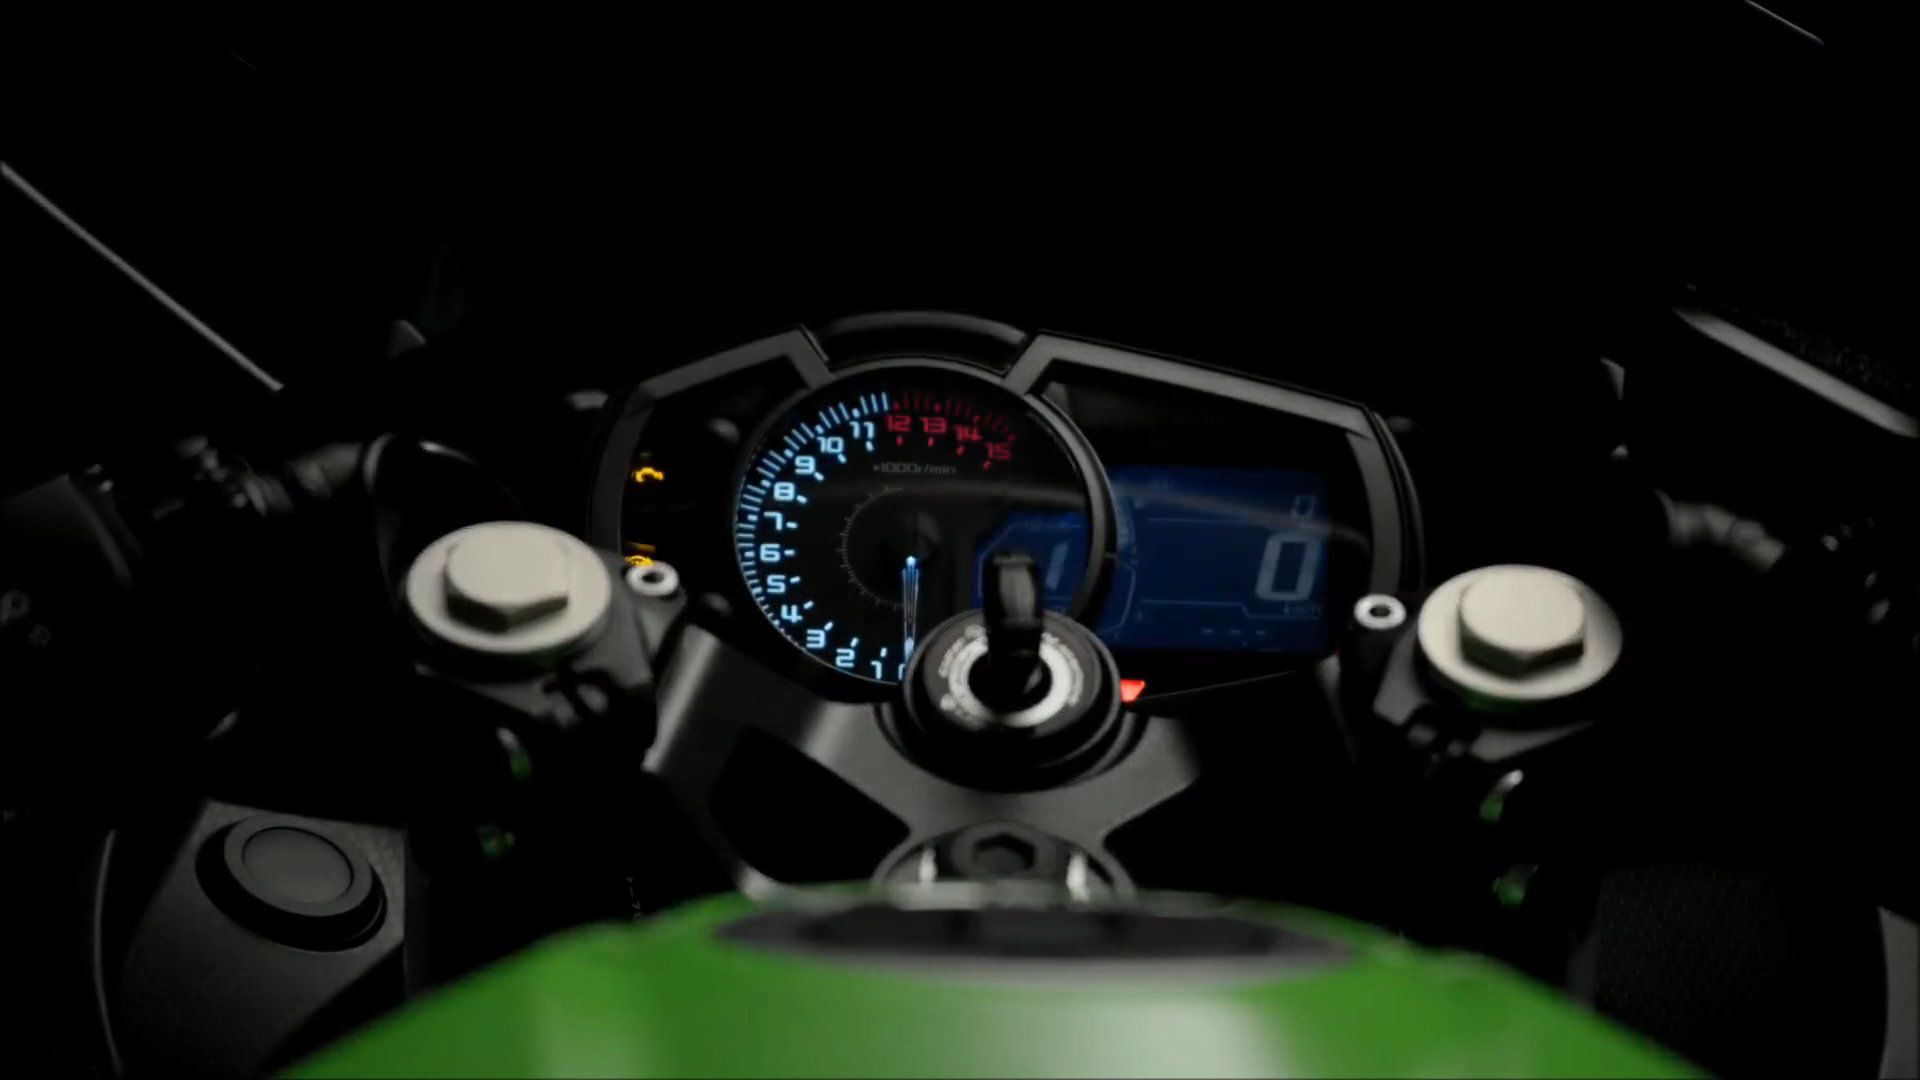 2018 Kawasaki Ninja 400 dashboard at night